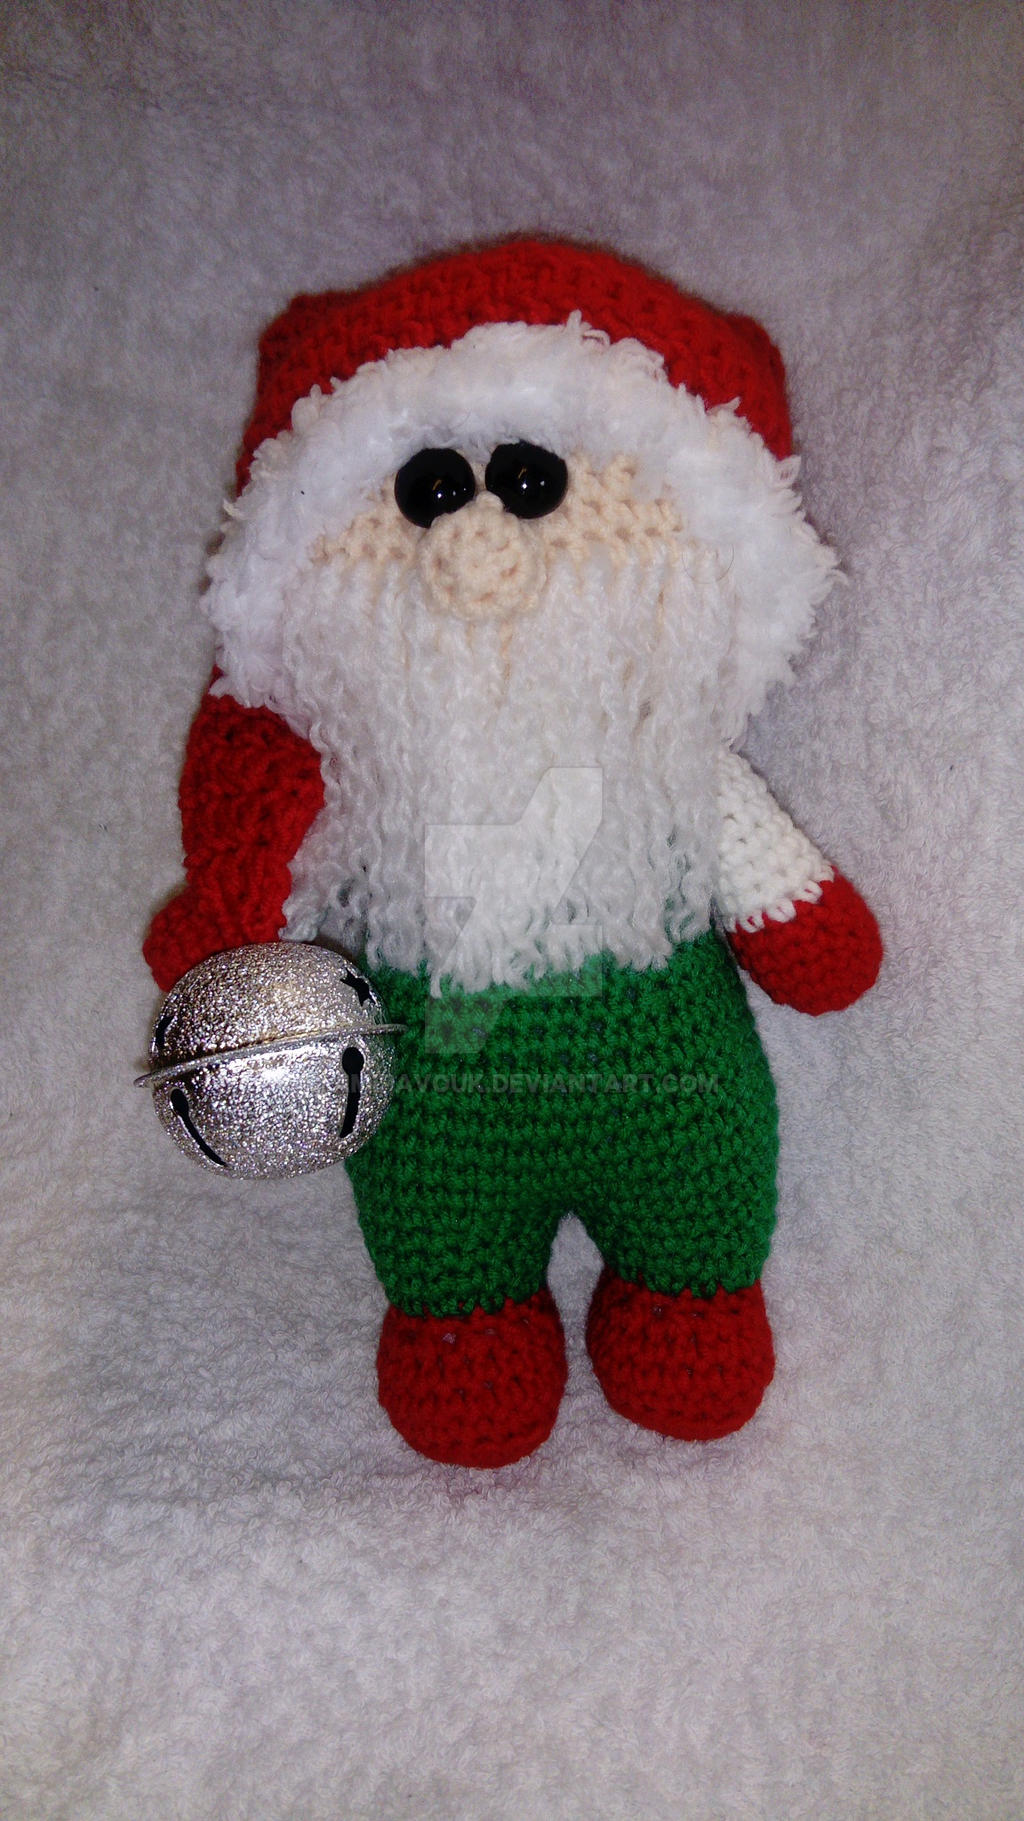 Ravelry: Elaine the Christmas Elf pattern by Crochet 365 Knit Too | 1821x1024